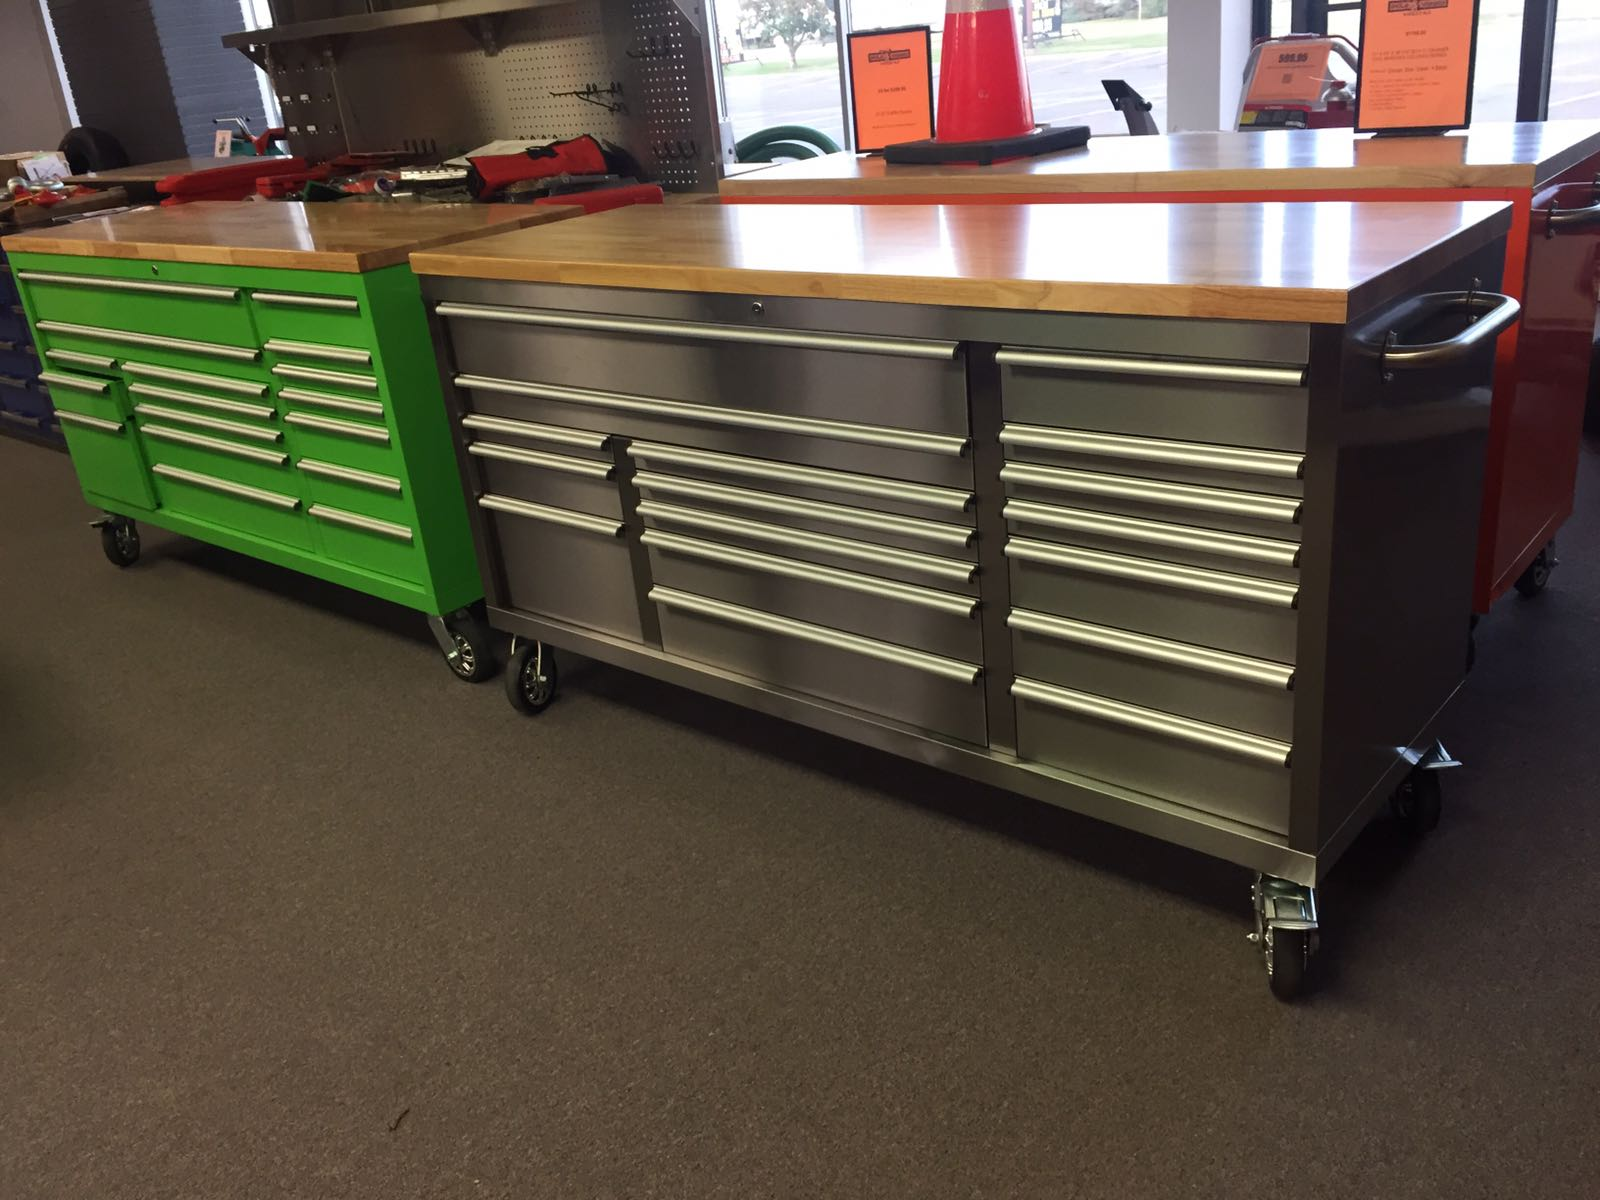 72 X 24 X 39 Fat Boy 17 Drawer Tool Benches Stainless